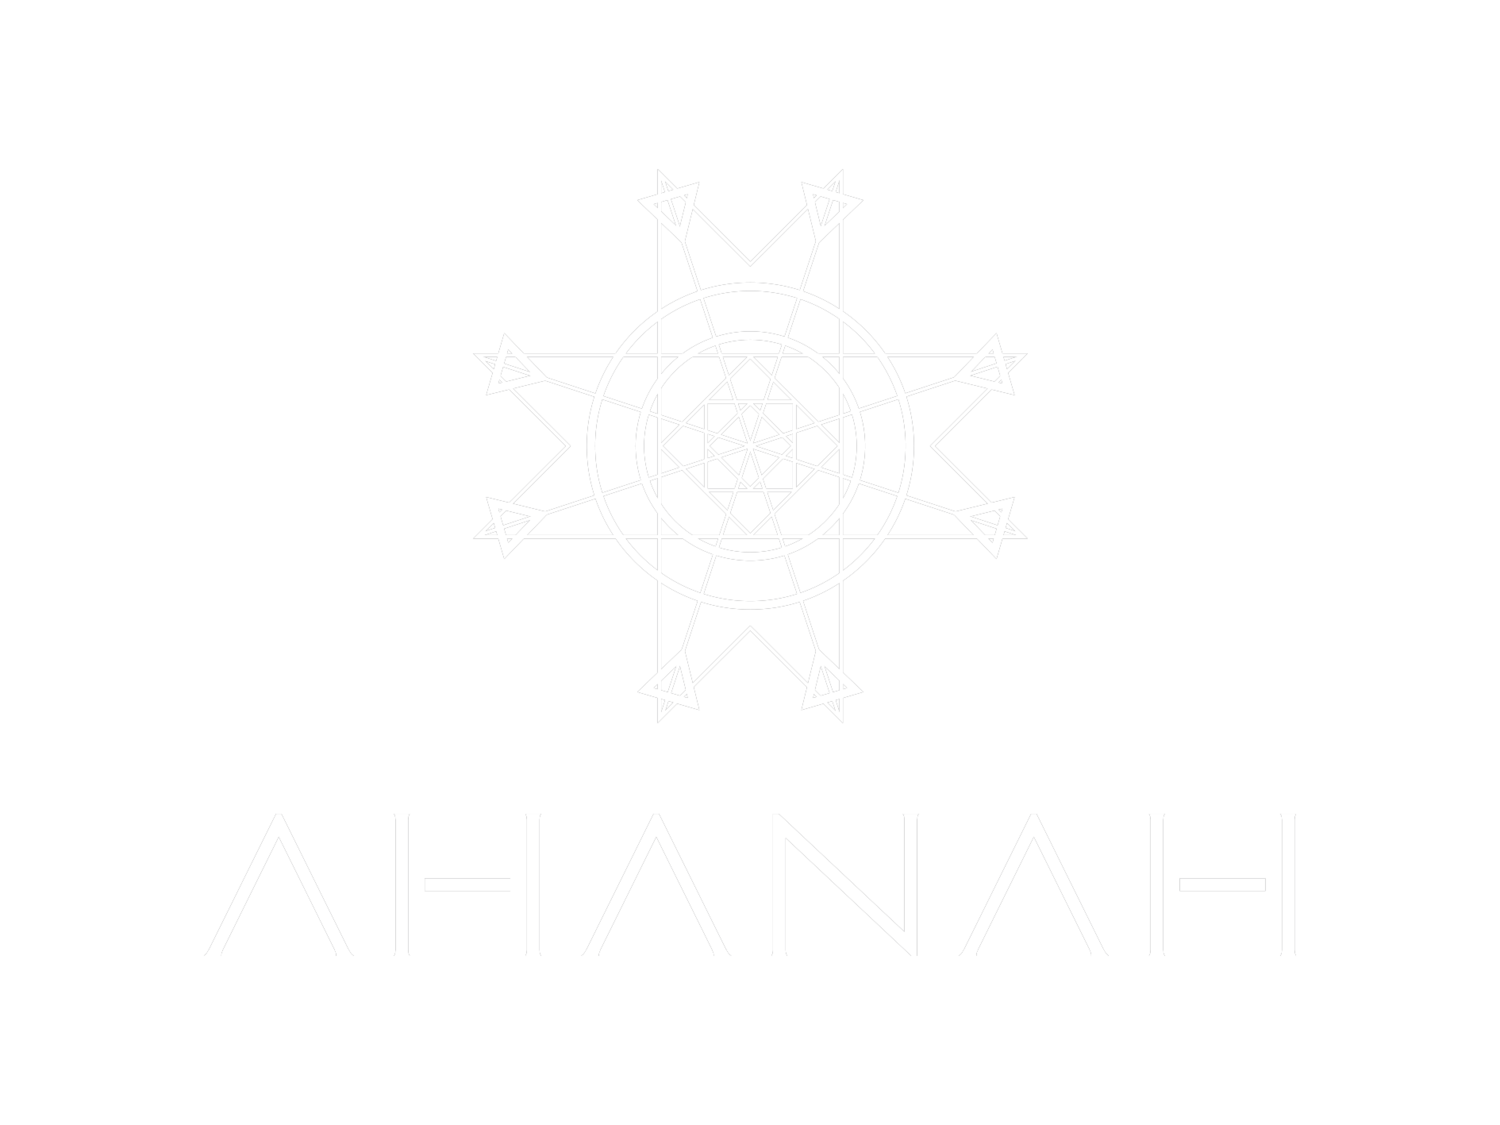 AHANAH | Inspiration to Expand your Inner Light